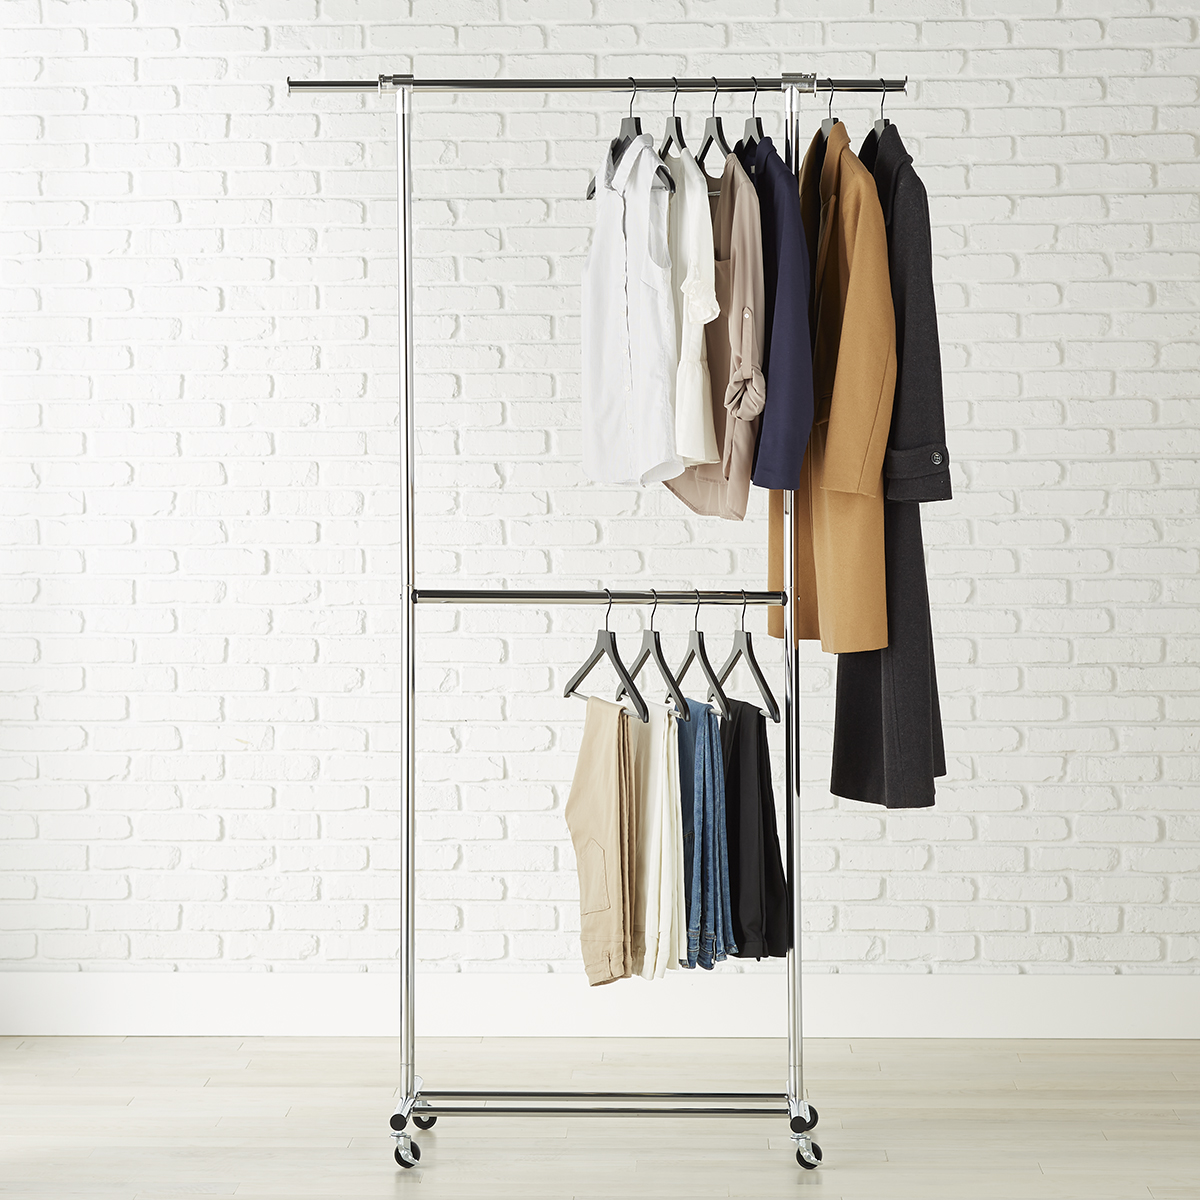 Chrome Metal Double Hang Clothes Rack